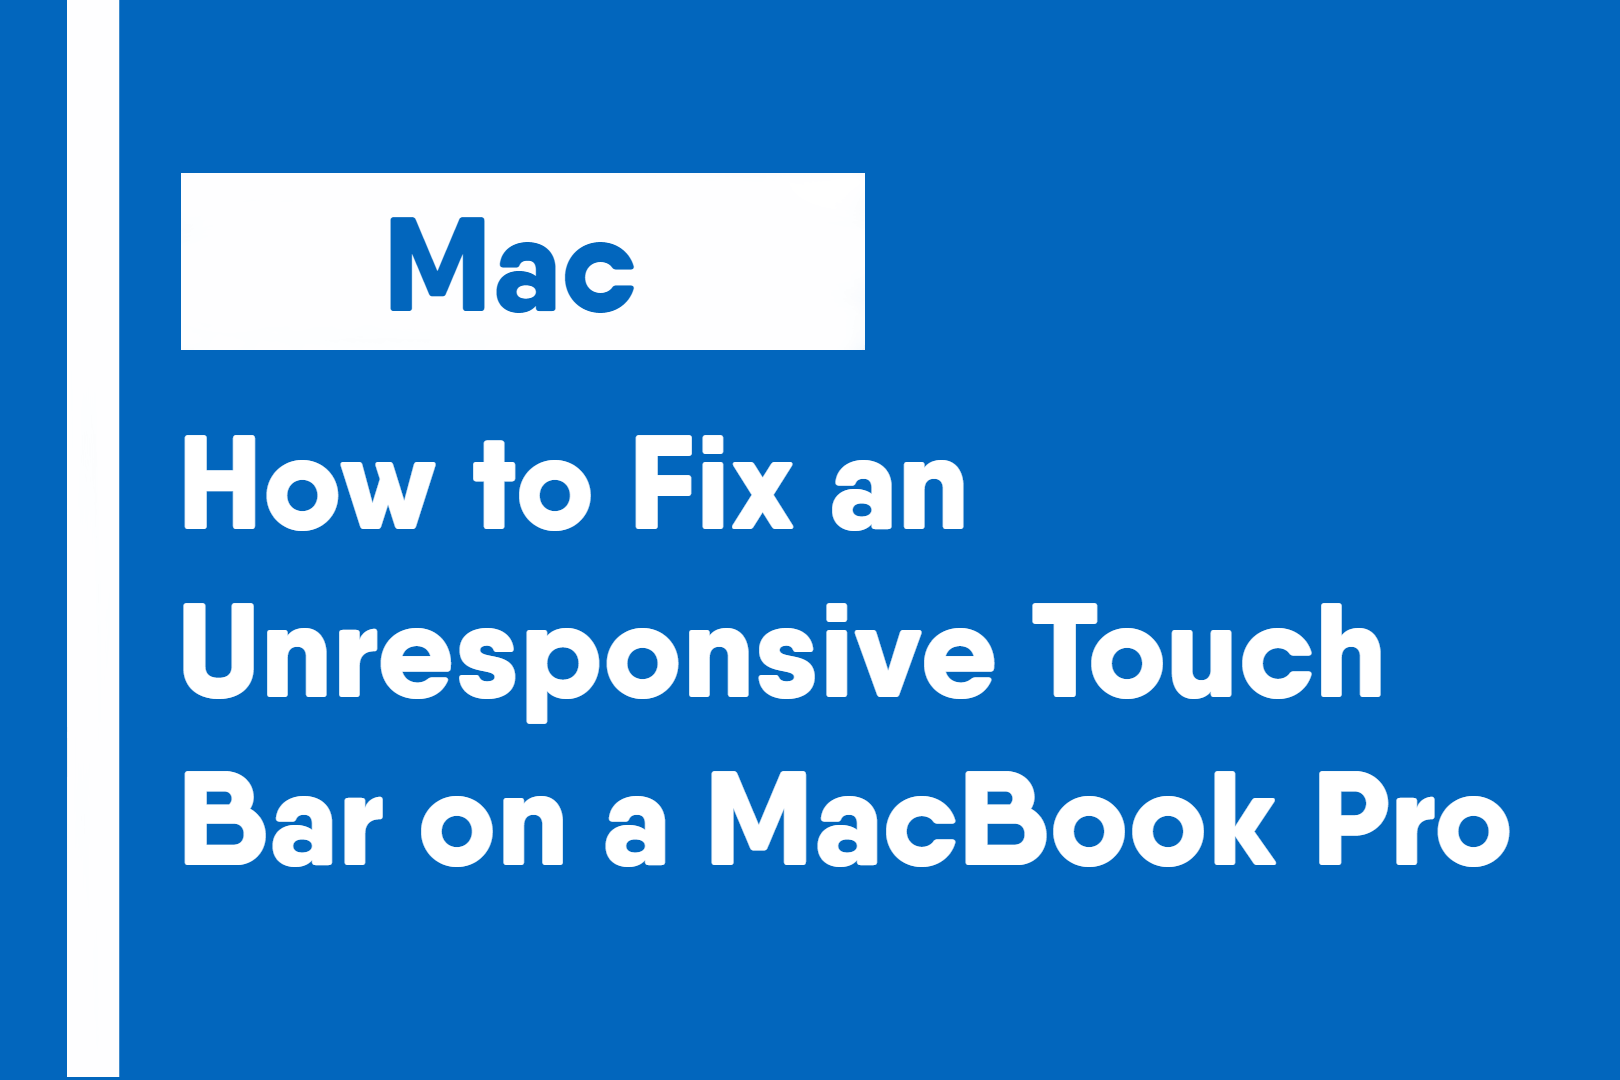 How to Fix an Unresponsive Touch Bar on a MacBook Pro